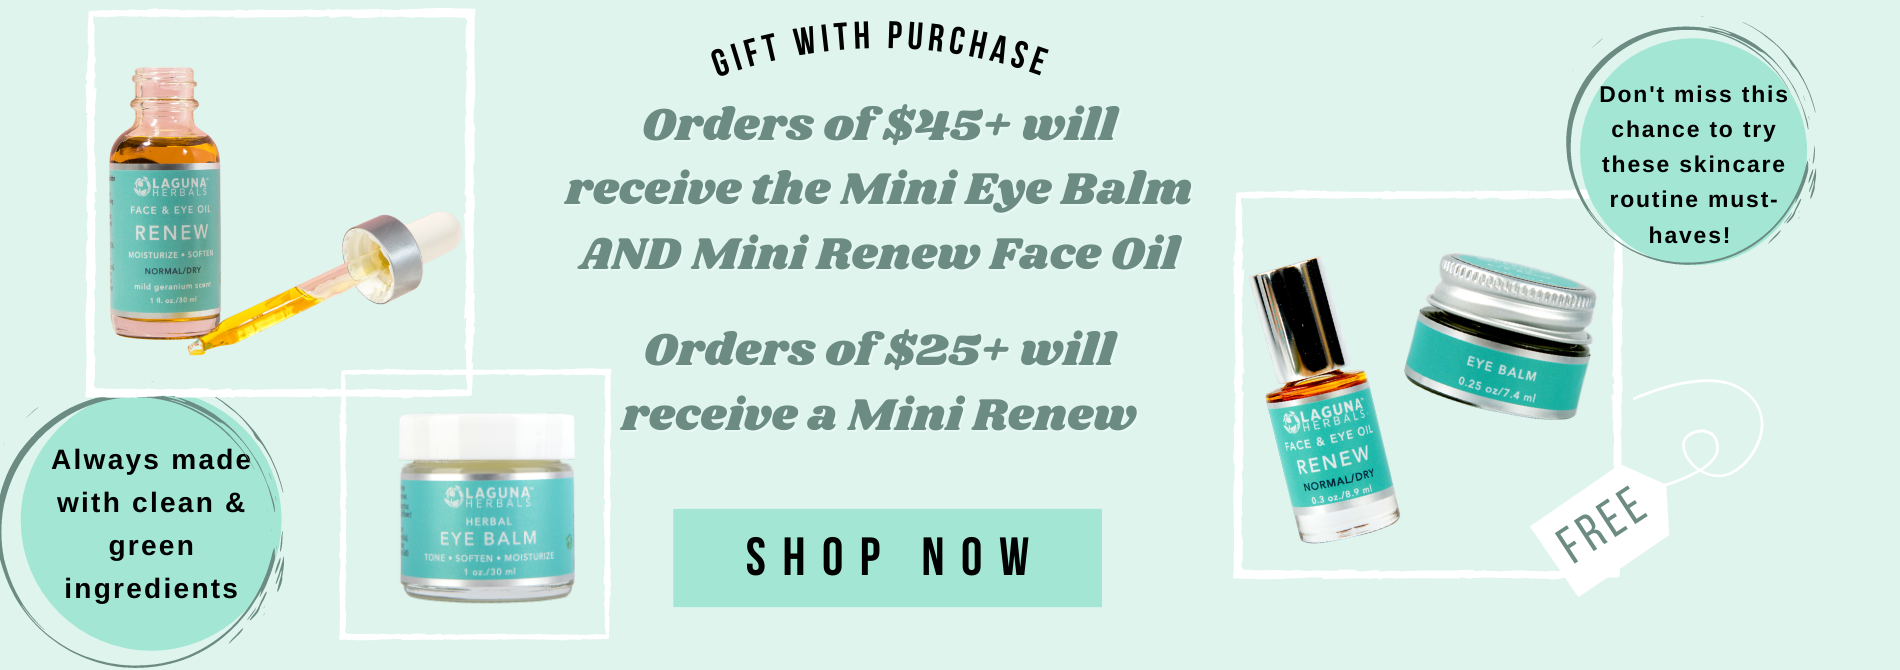 Organic Skincare Gift with Purchase